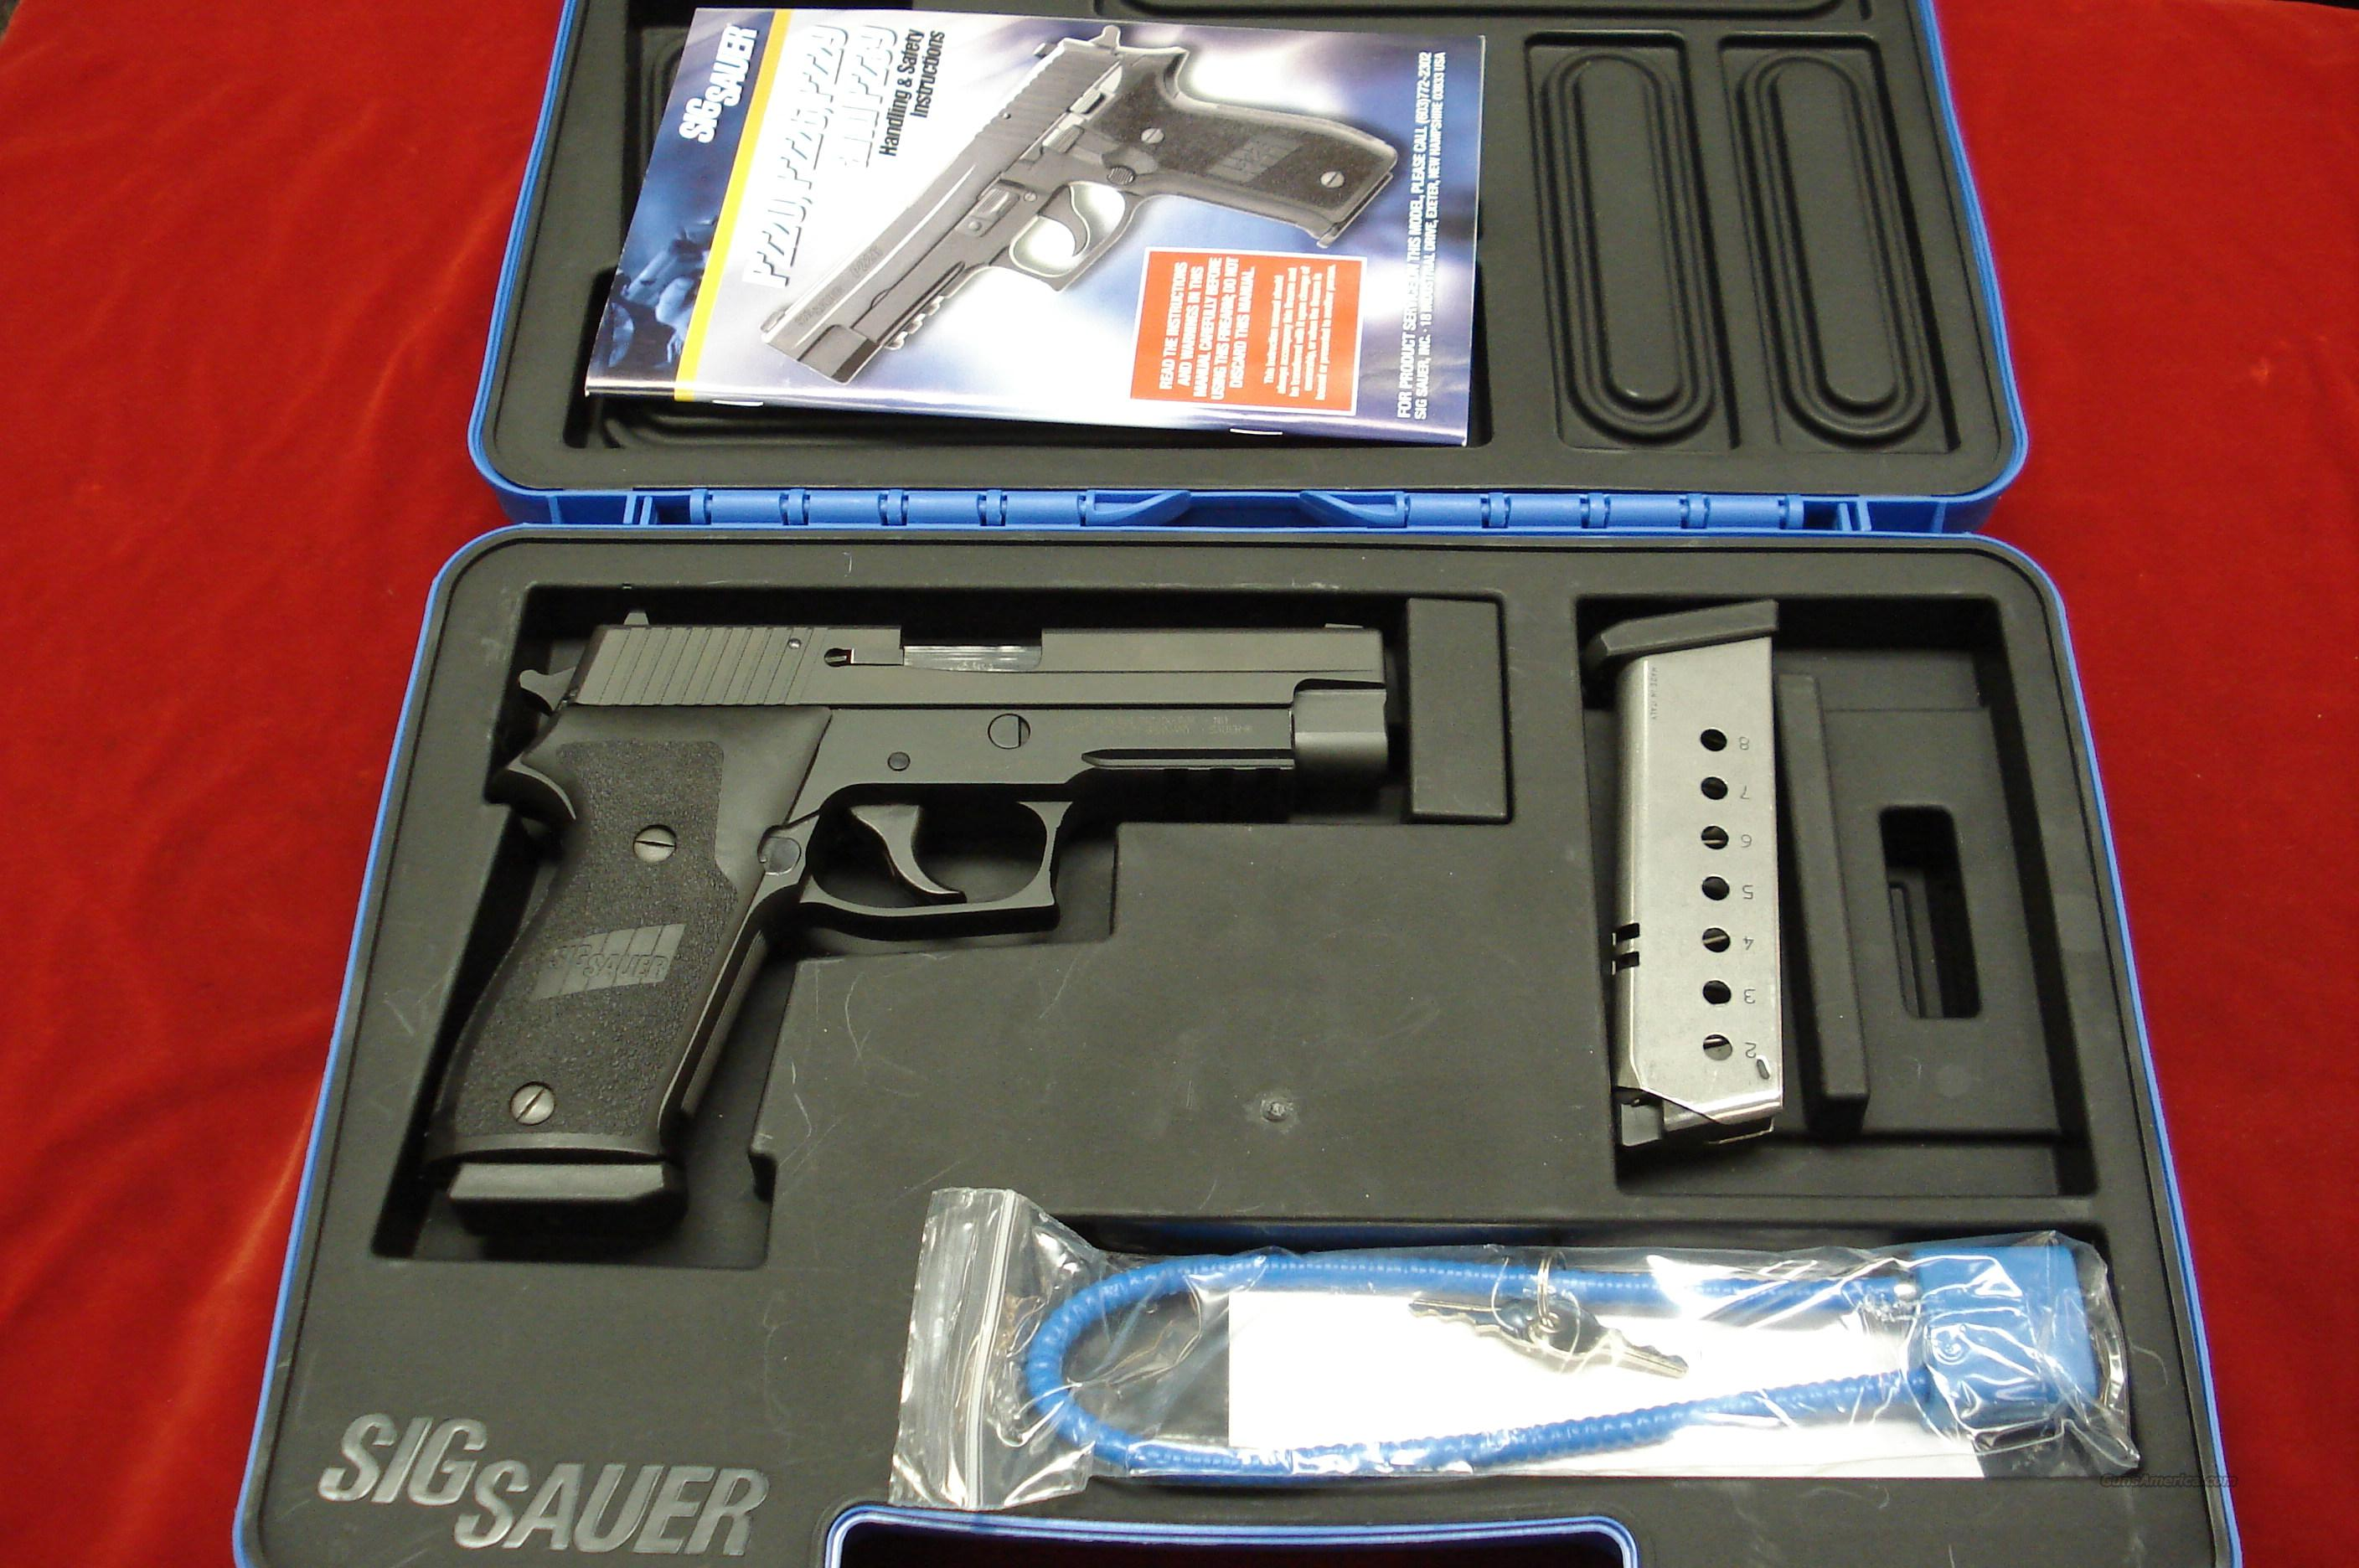 SIG SAUER P220 45ACP USED  Guns > Pistols > Sig - Sauer/Sigarms Pistols > P220